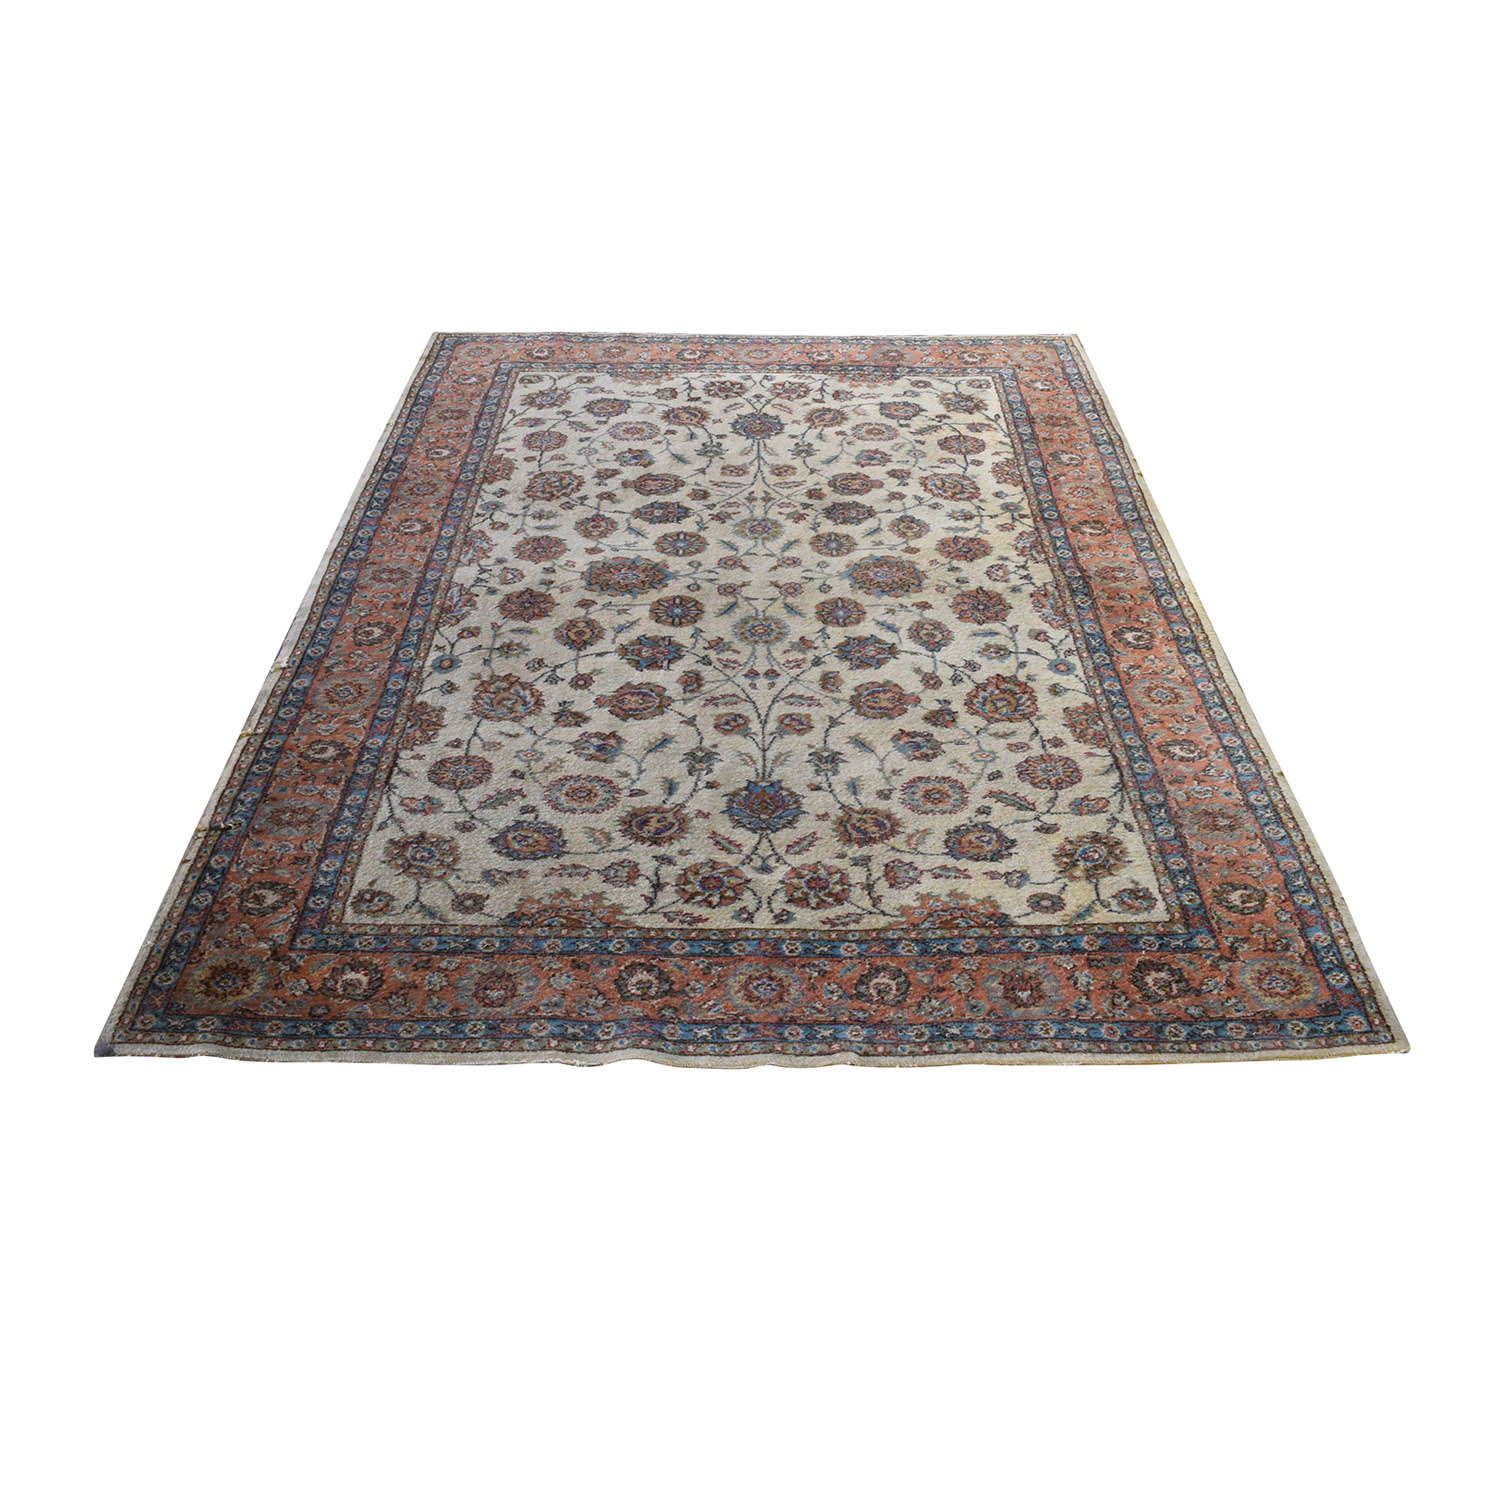 Turkish Beige Red Wool Rug / Rugs